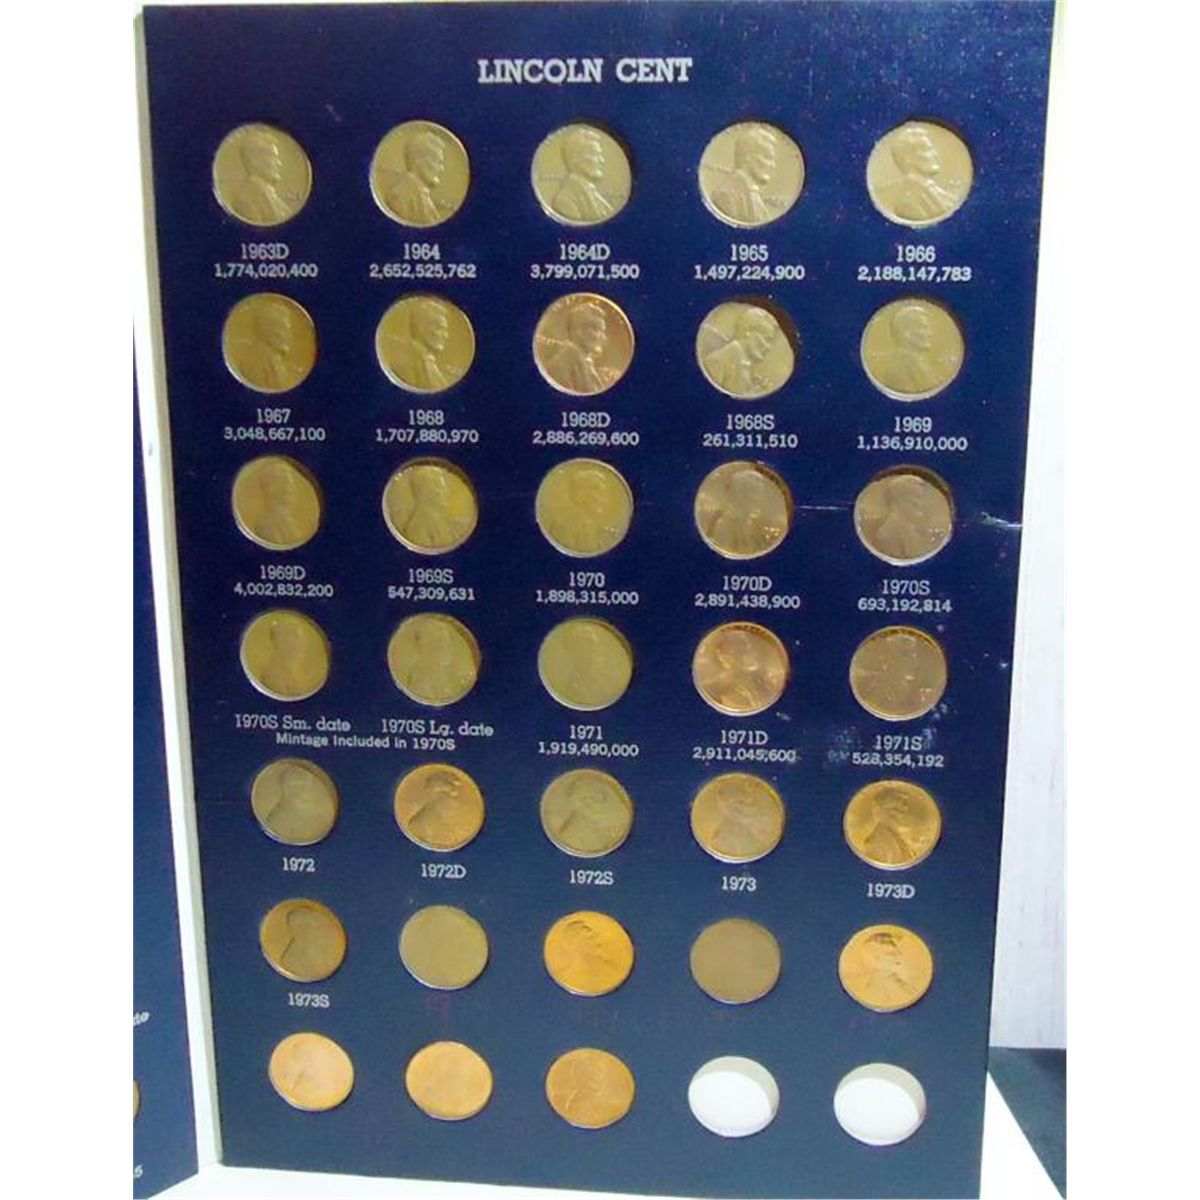 Snoopy's Penny Coin Collection Book